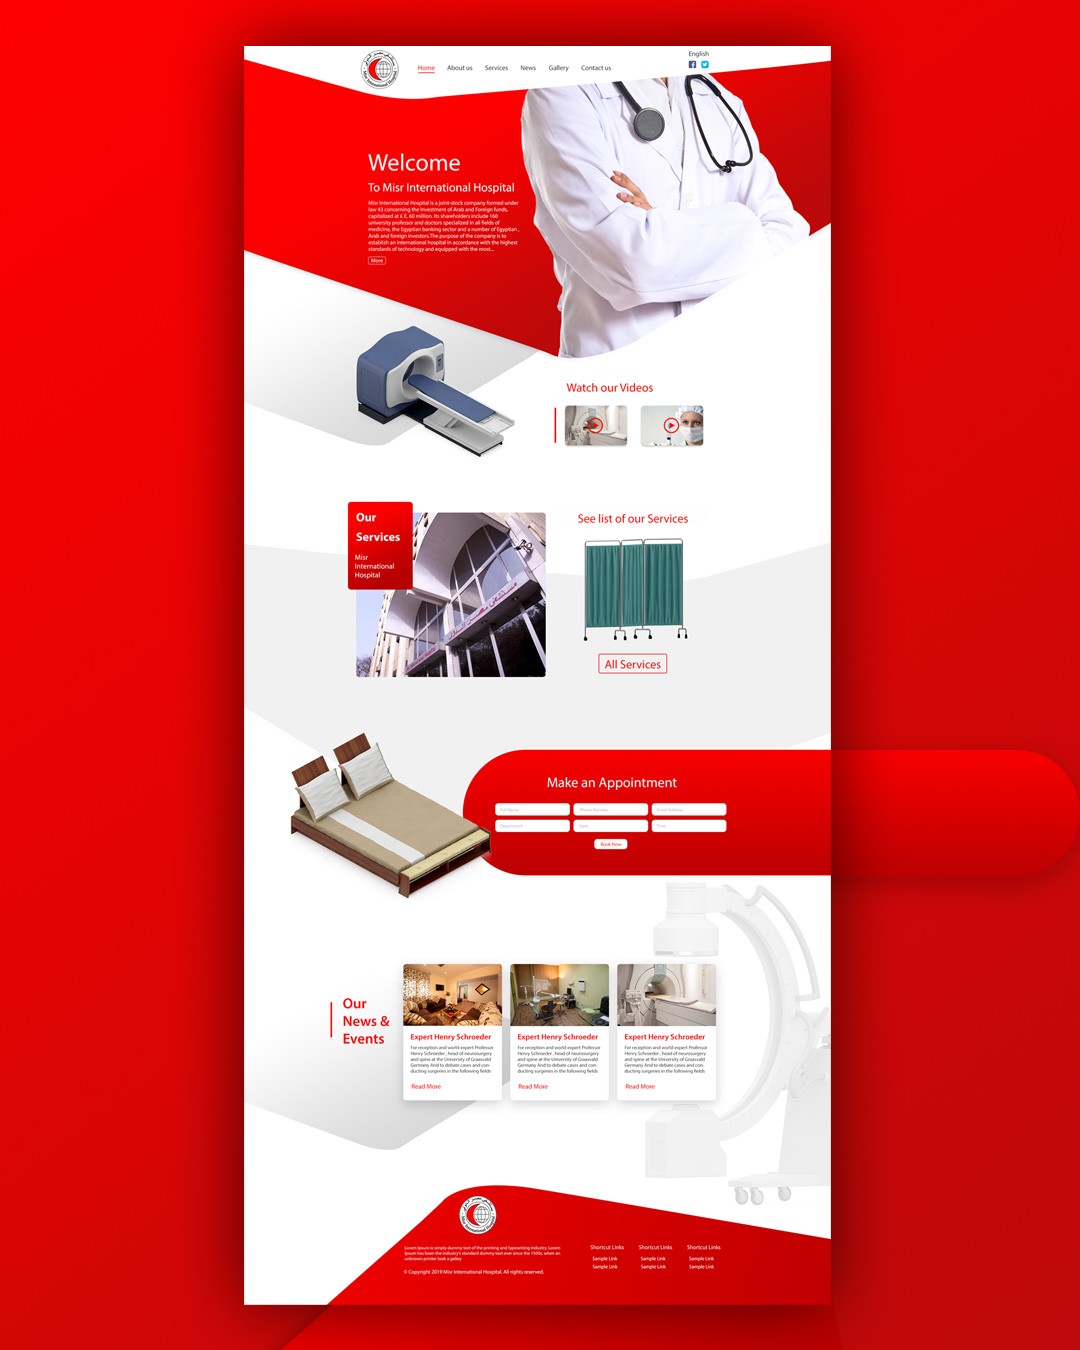 misr-hospital-website-design-development-waleedsayed